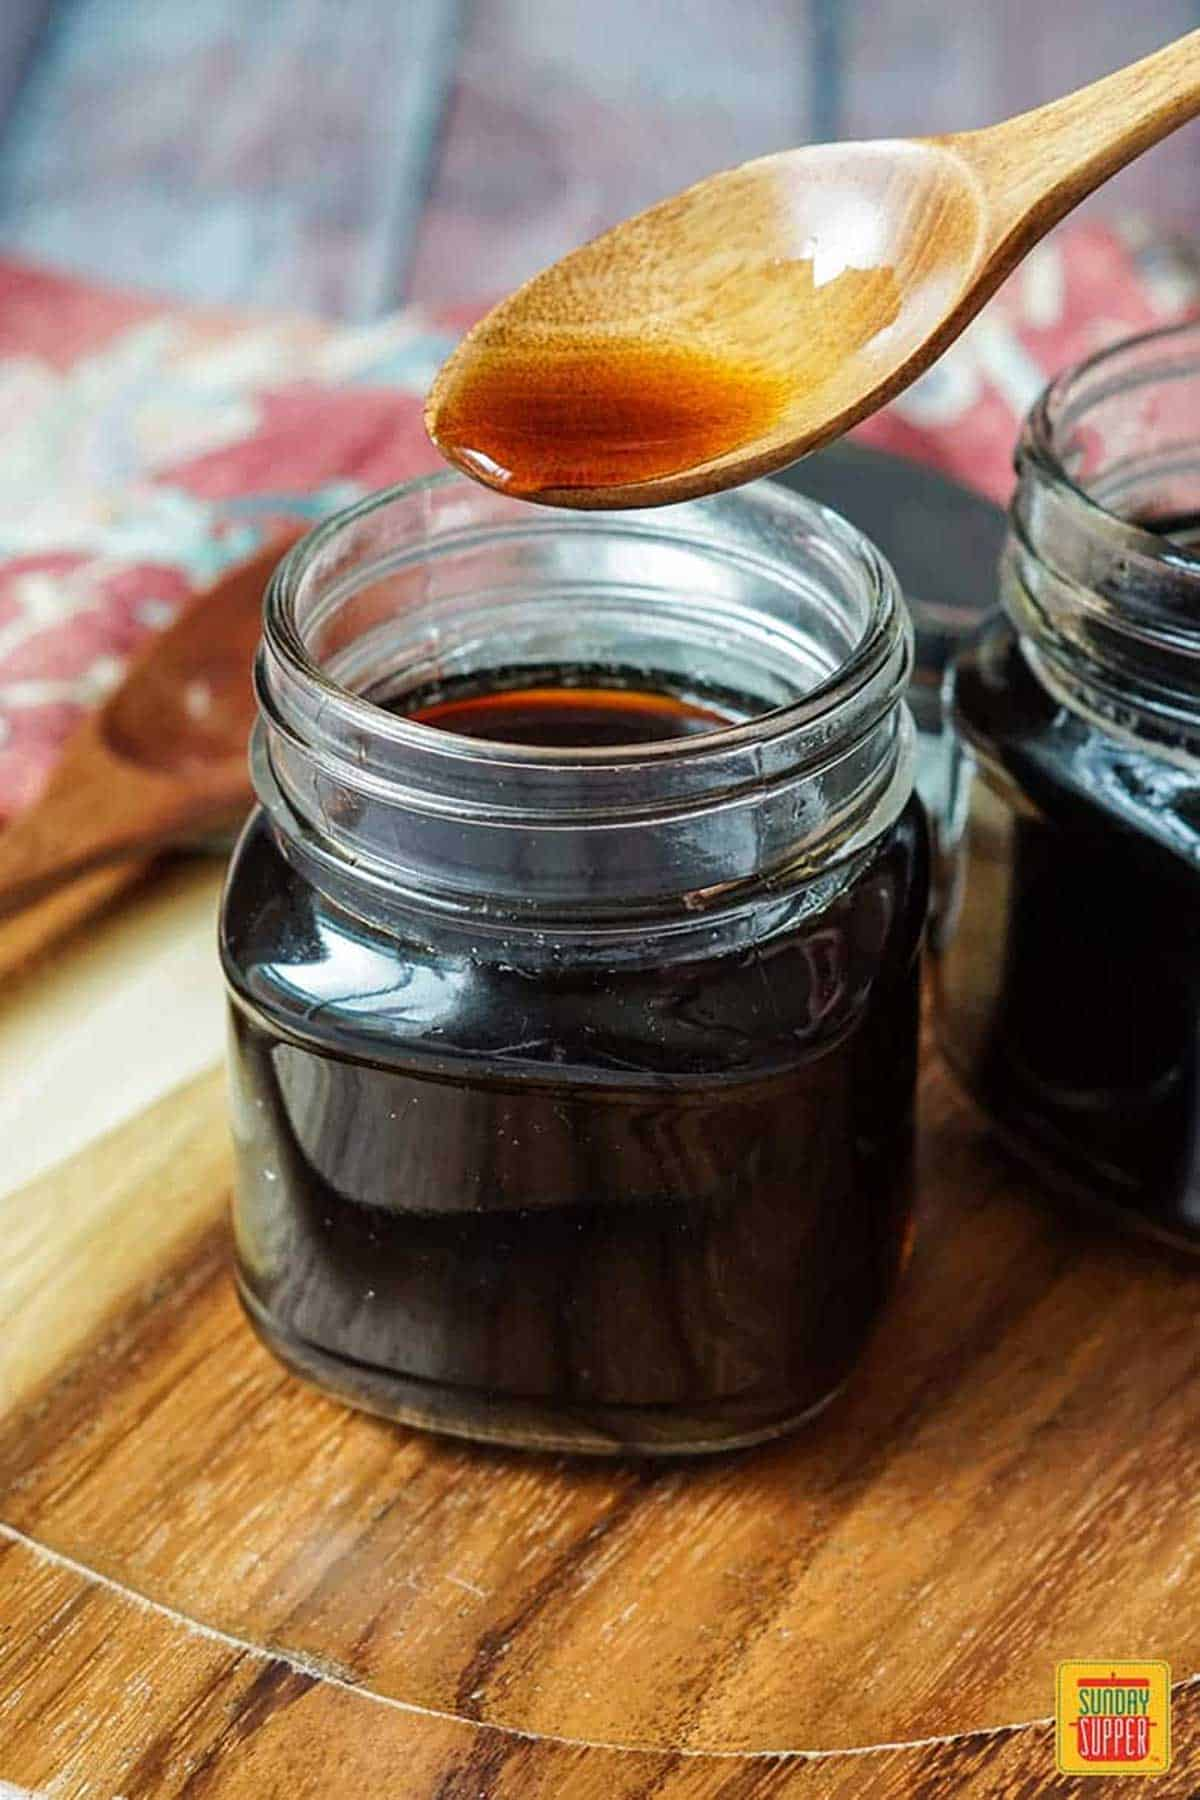 Pouring homemade teriyaki sauce into a glass jar using a wooden serving spoon